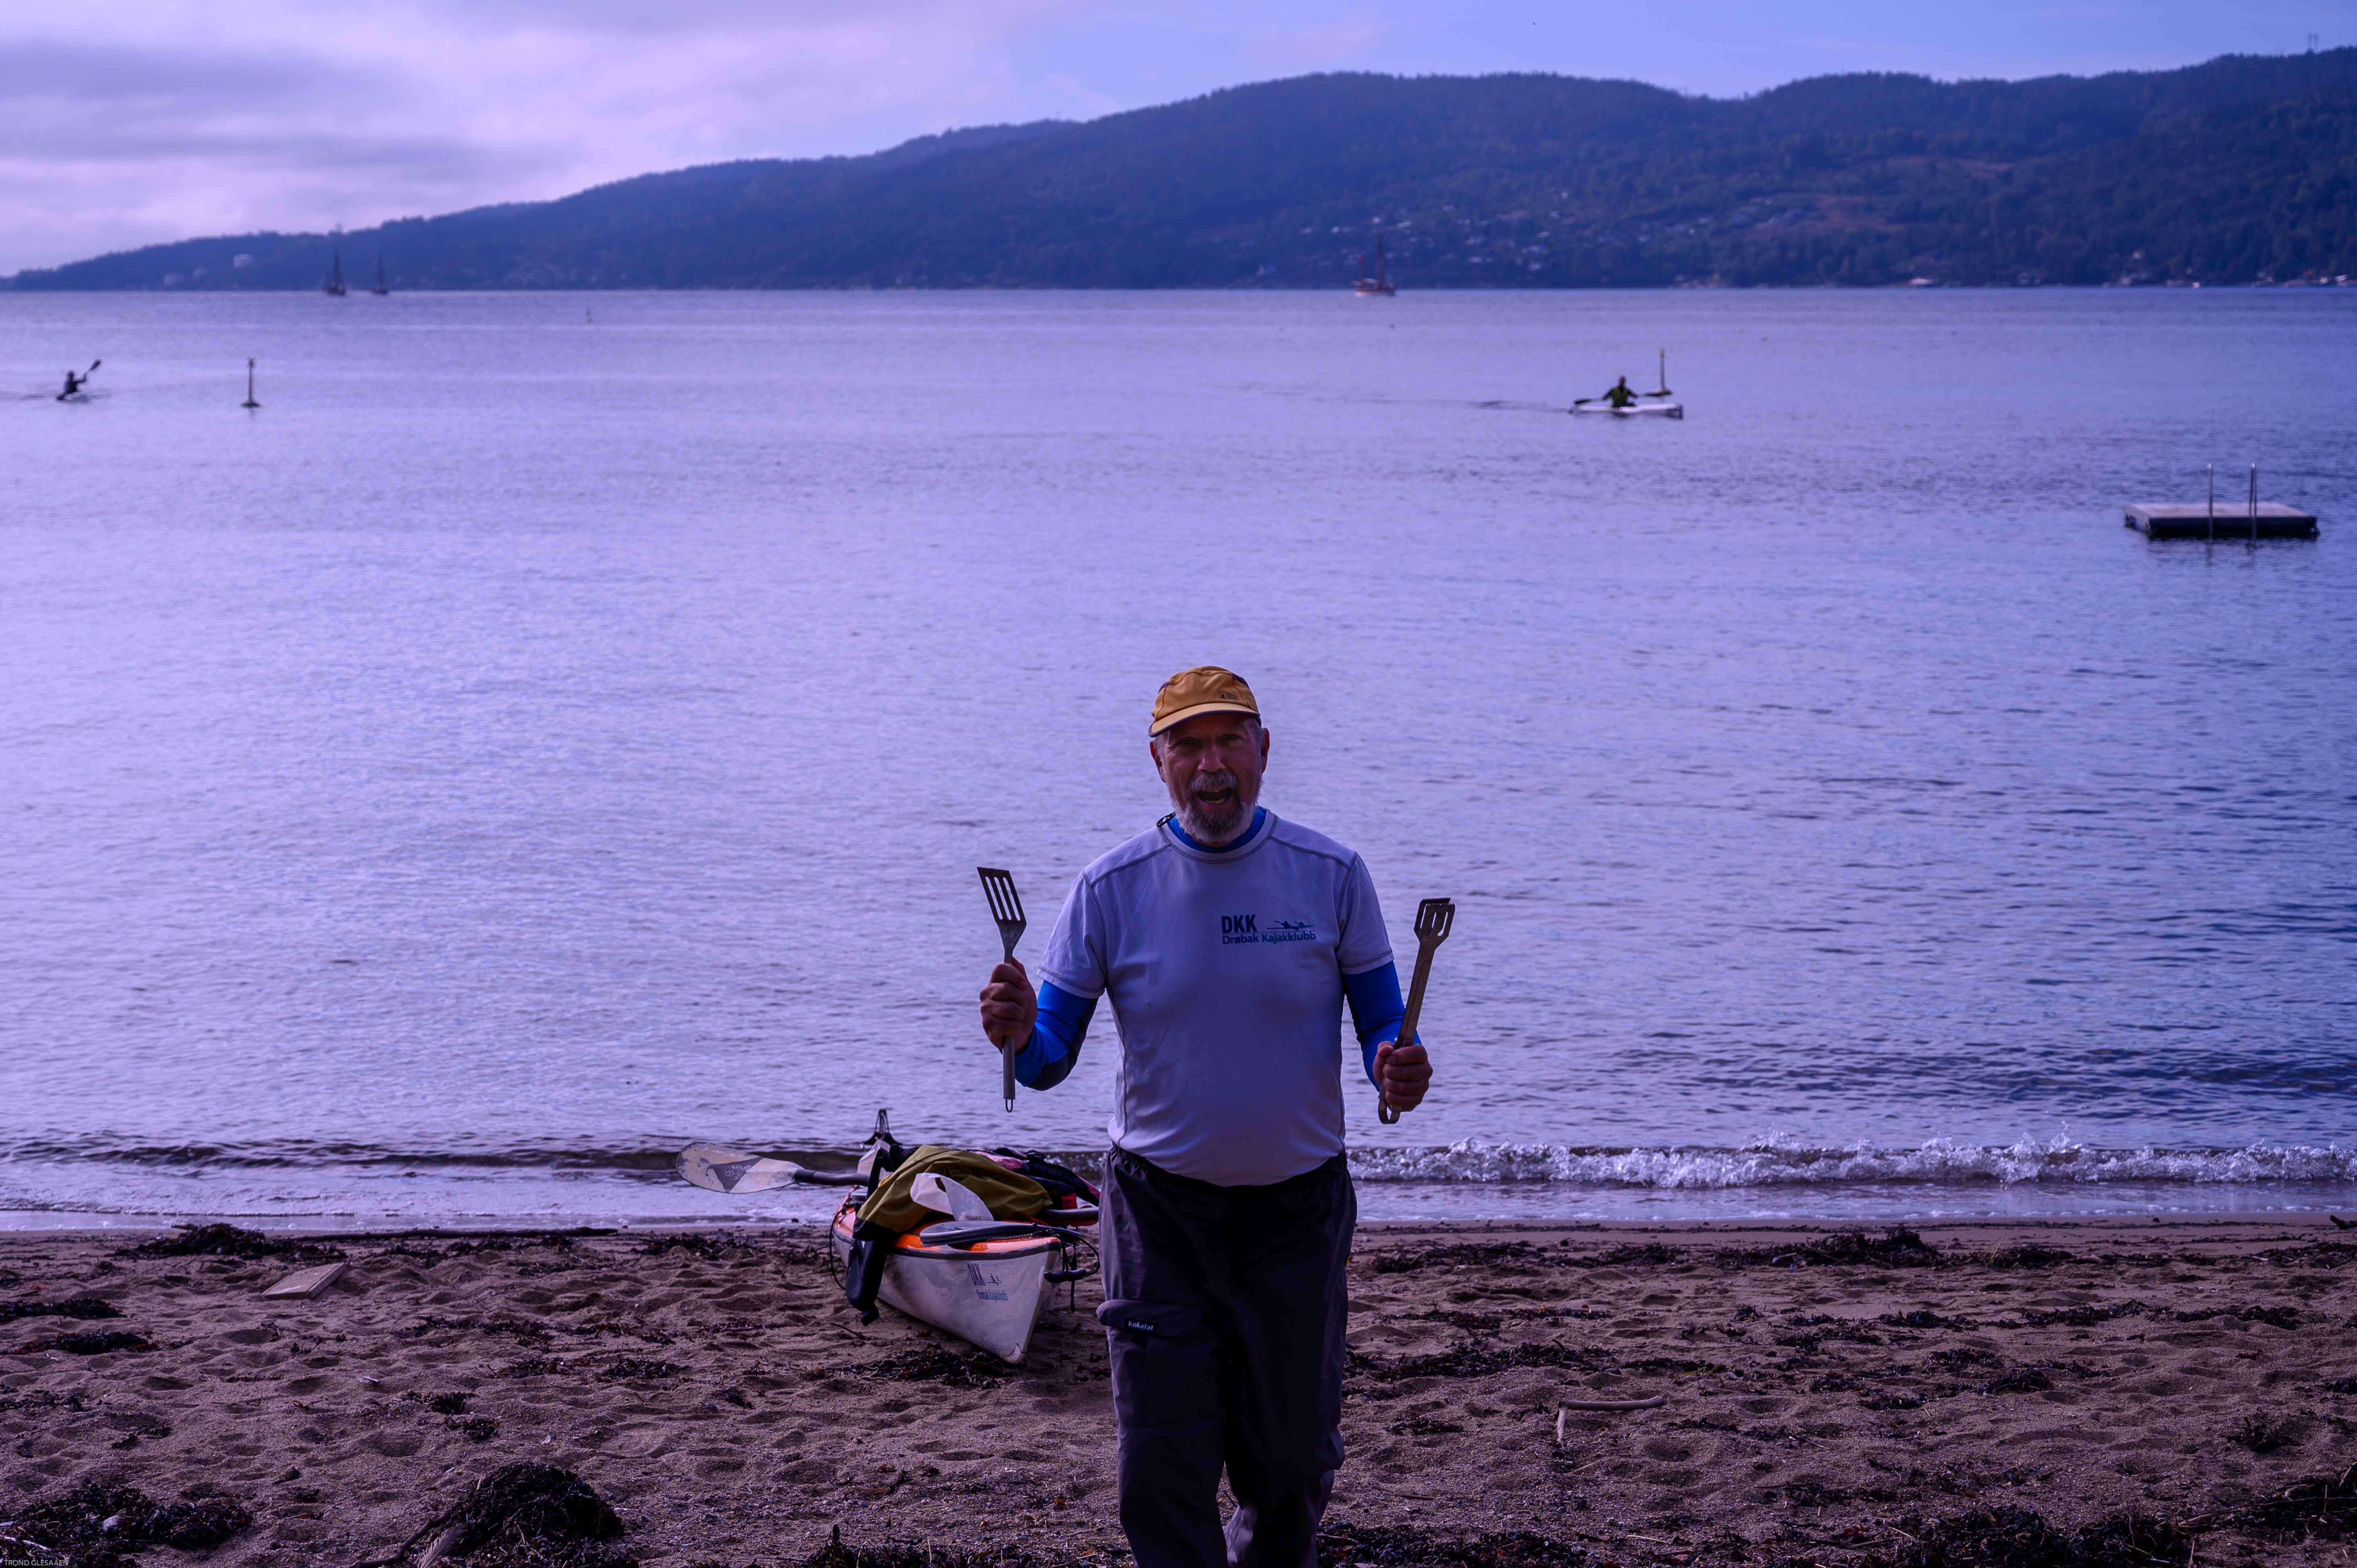 2019-09-22-Demodag-Surfski-Skipelle-Drøbak-025